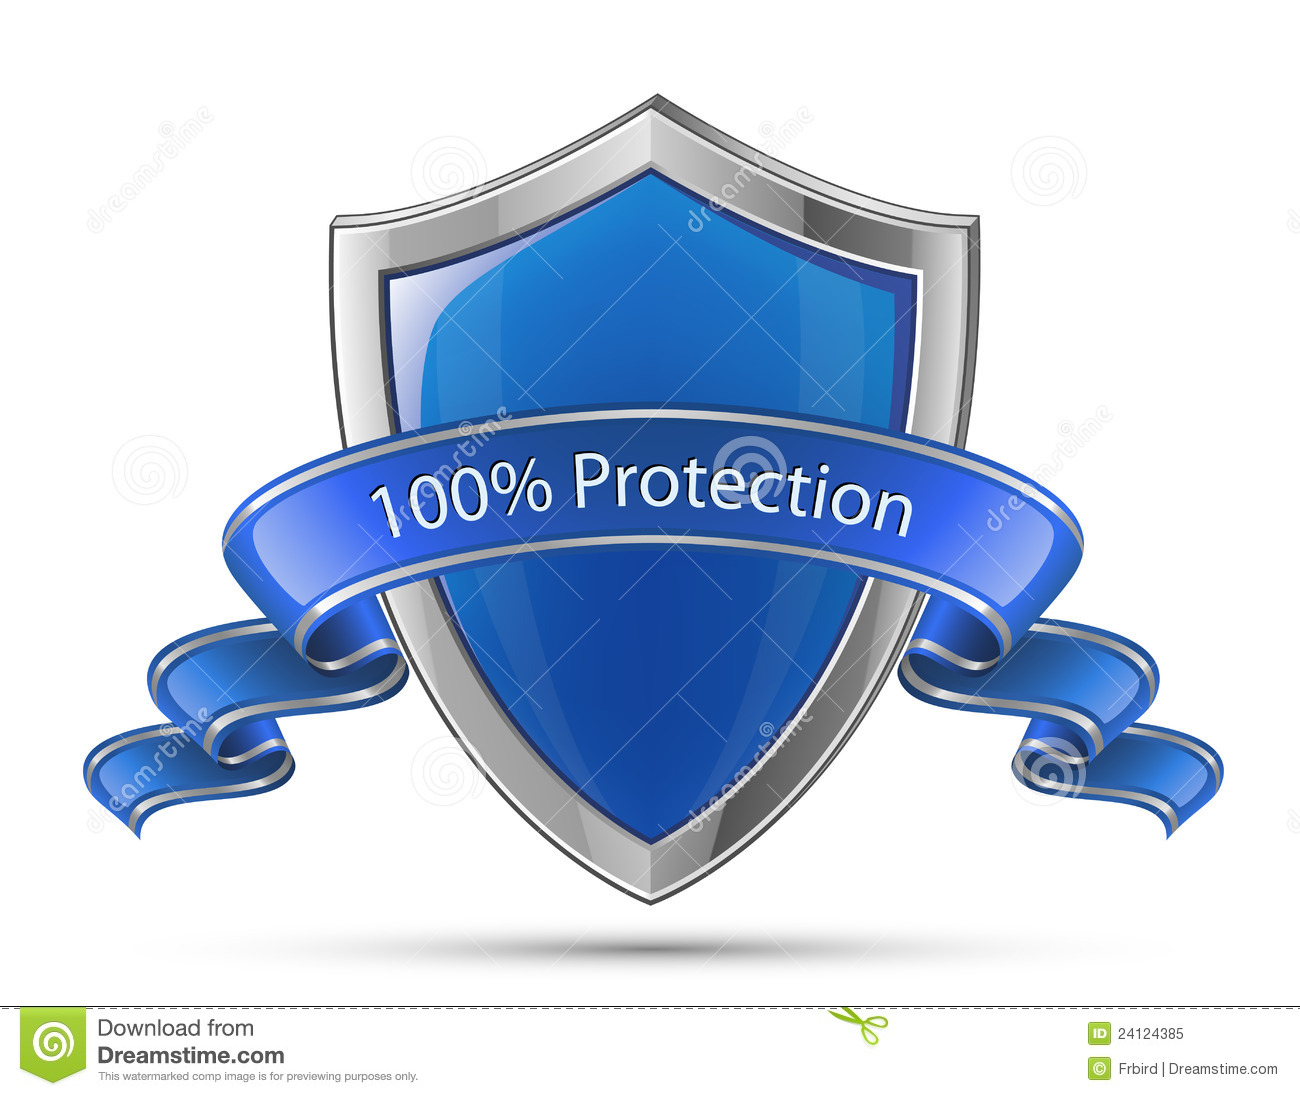 100  protection shield symbol royalty free stock photo free congratulations clipart on engagement free congratulations clipart with flowers